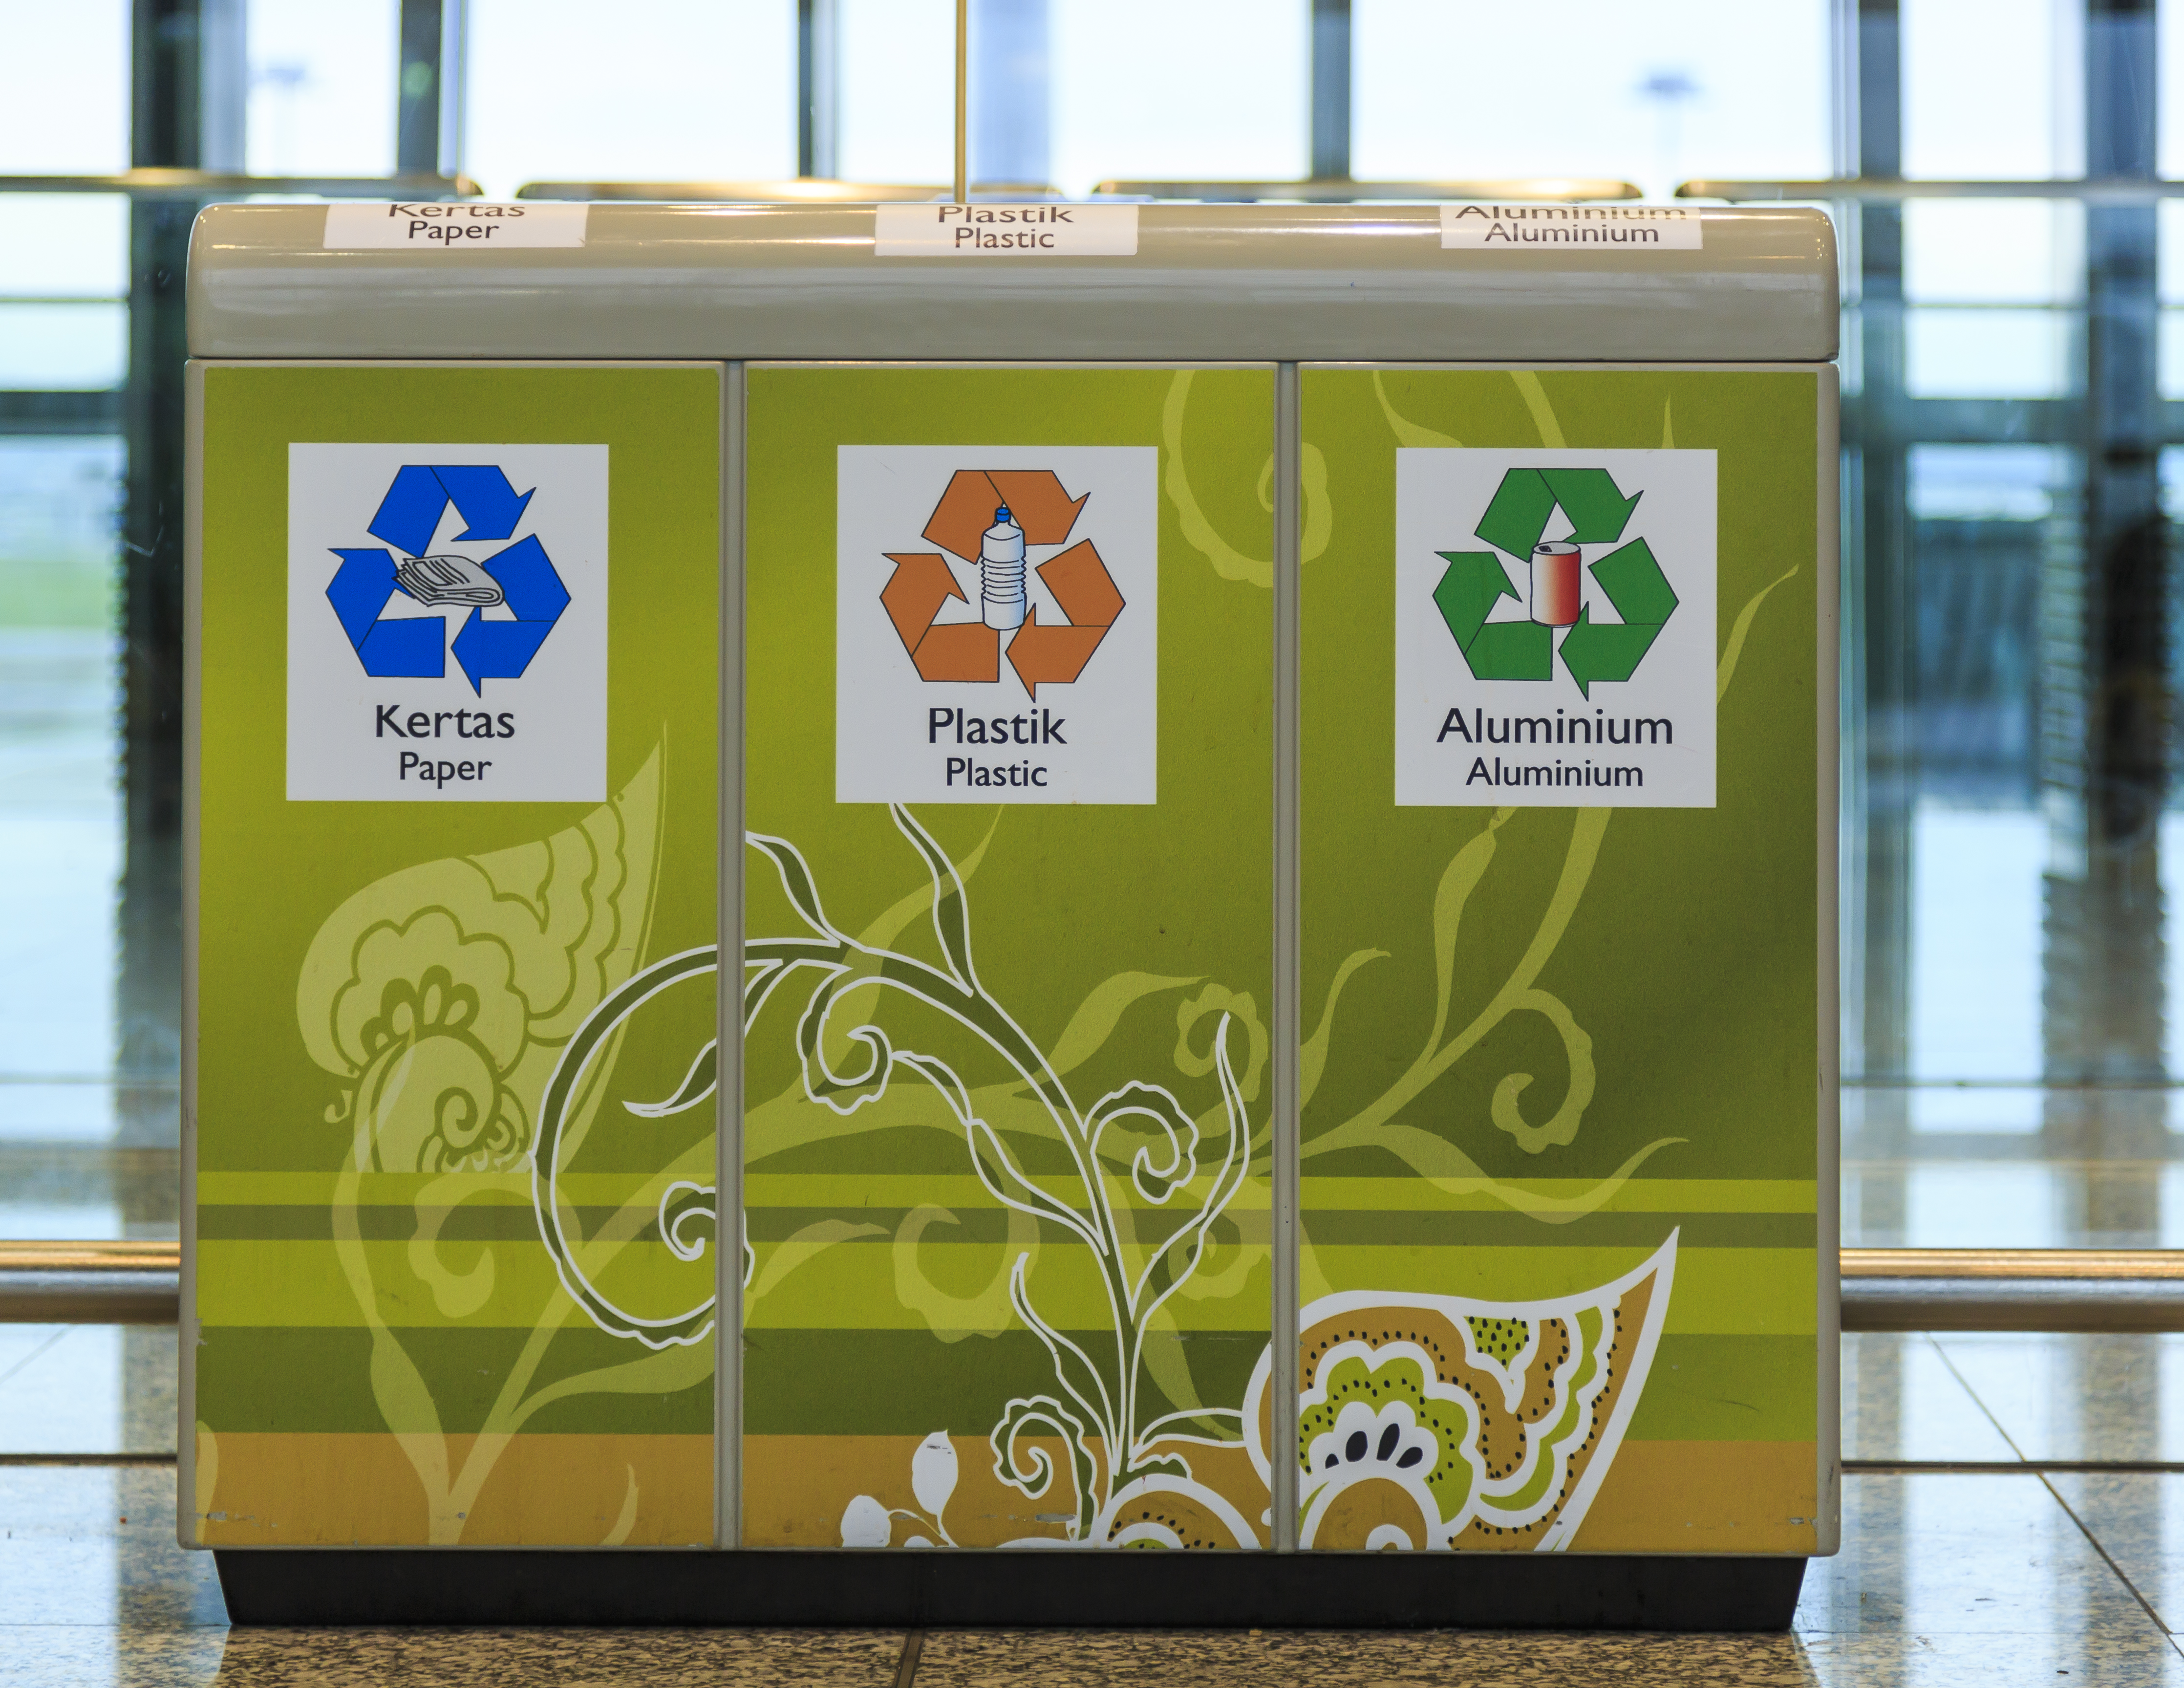 recycling in malaysia Lead battery recycling world is an exclusive business directory & portal for lead battery recycling, lead battery scrap, lead metal, lead products ind.